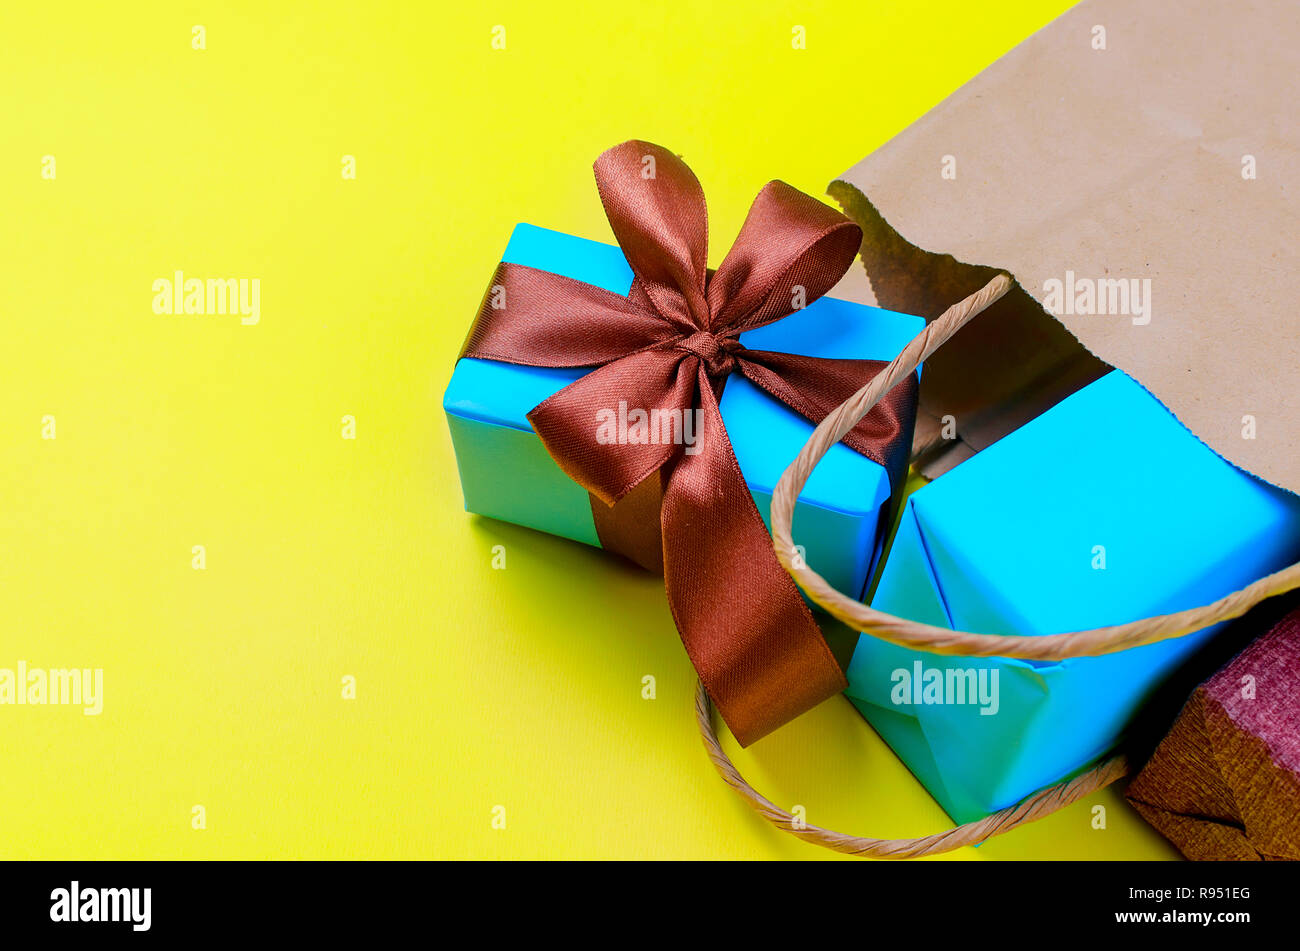 blue gift boxes decorated with a brown bow fall out of the crafting bag lie on a yellow background - Stock Image